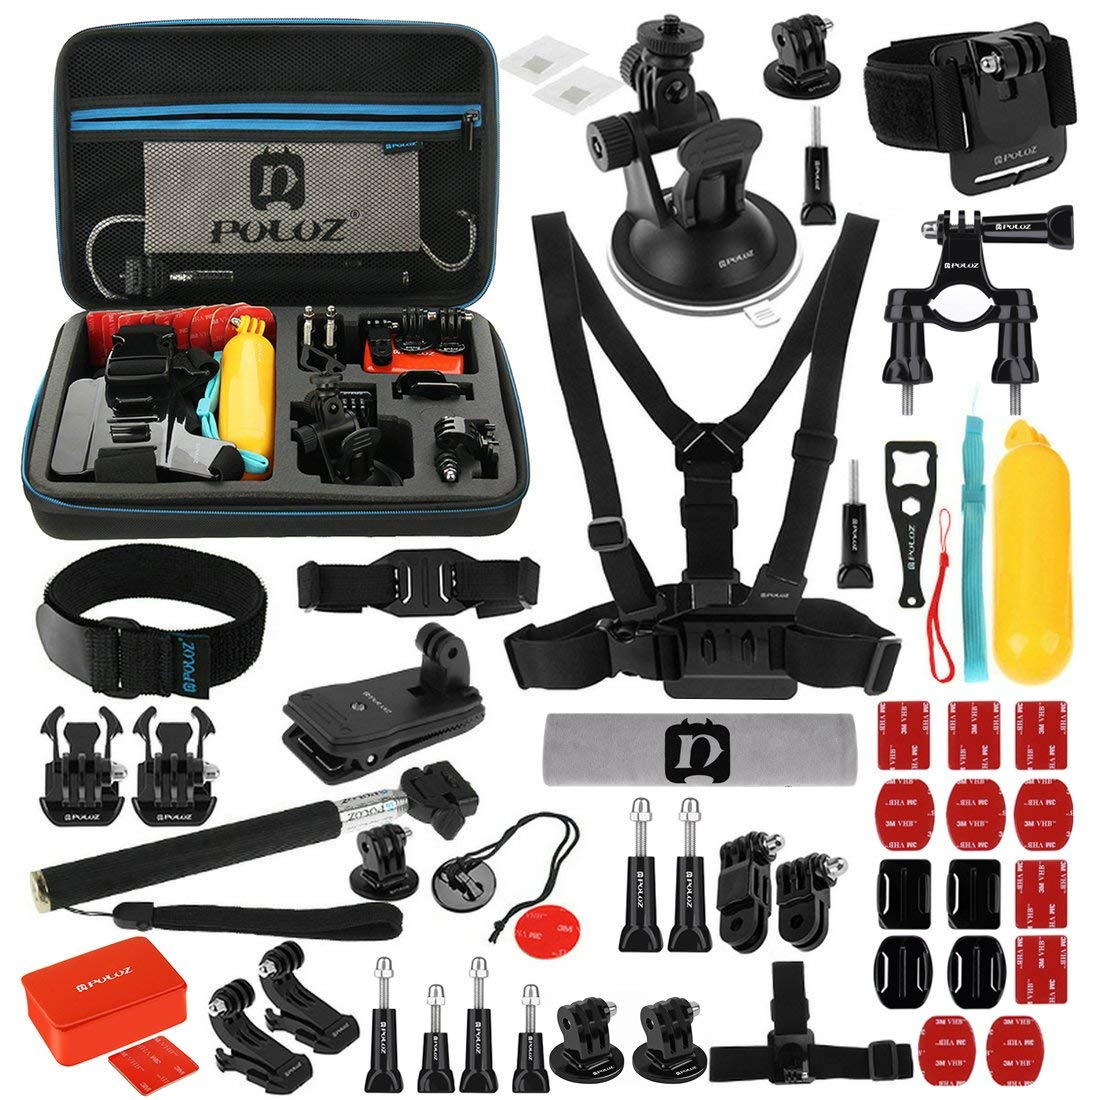 PULUZ 53 in 1 Camera Accessories Kits ( Suction Cup Mount+ Chest& Wrist& Helmet Strap+ Monopod+ Tripod Adapter+ Handlebar) for GoPro HERO6/5/4/3+/3/2/1, Xiaoyi & Other Action Cameras (Black)